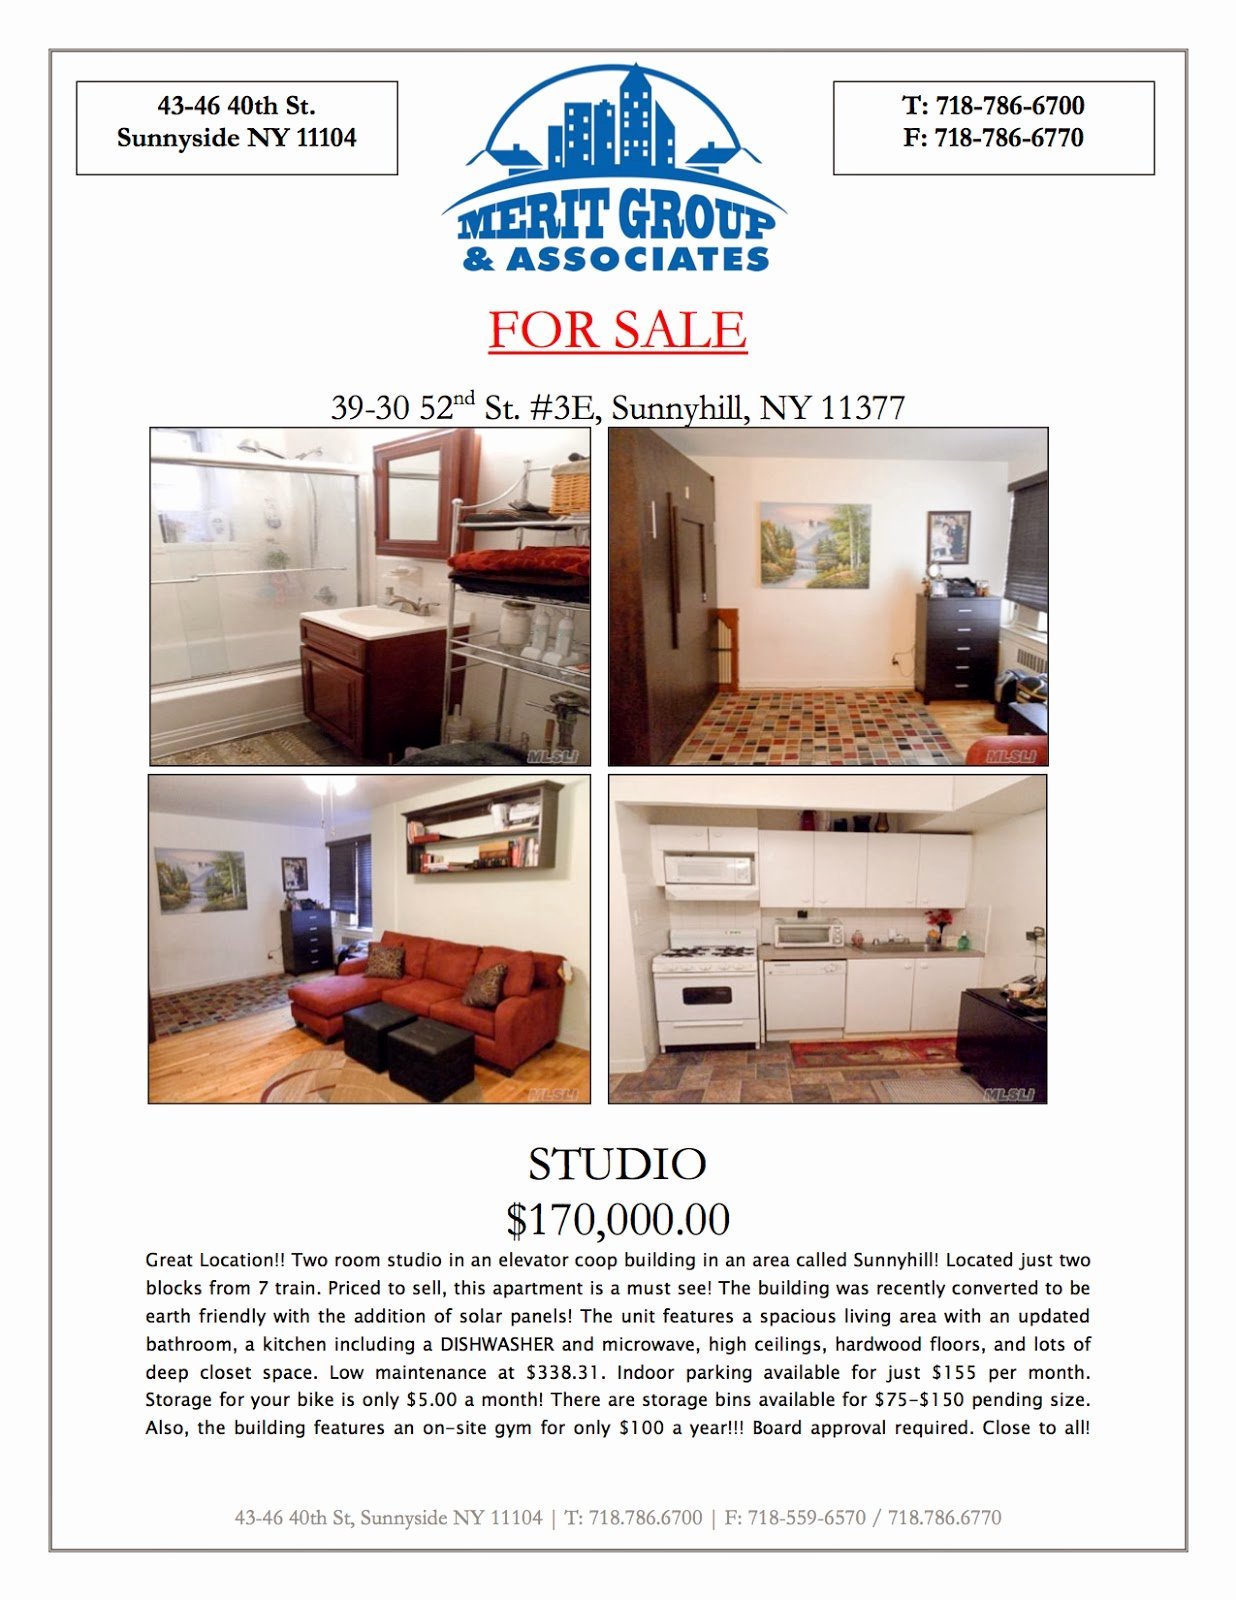 Room for Rent Flyers Luxury Sunnyside Gardens for Rent